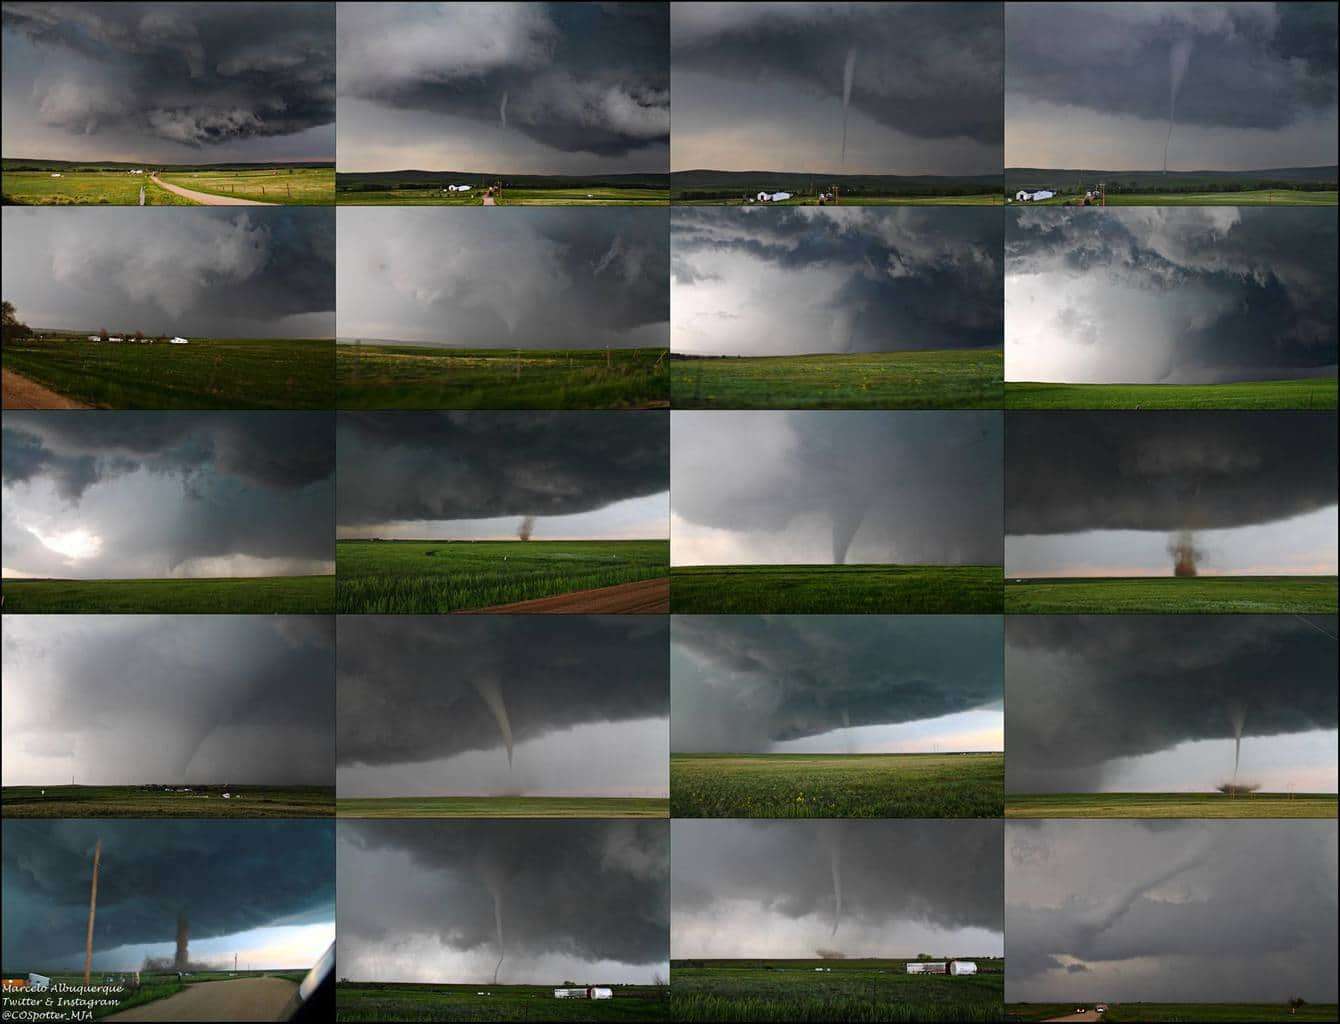 I finally got around to making a collage of the Simla tornadoes!